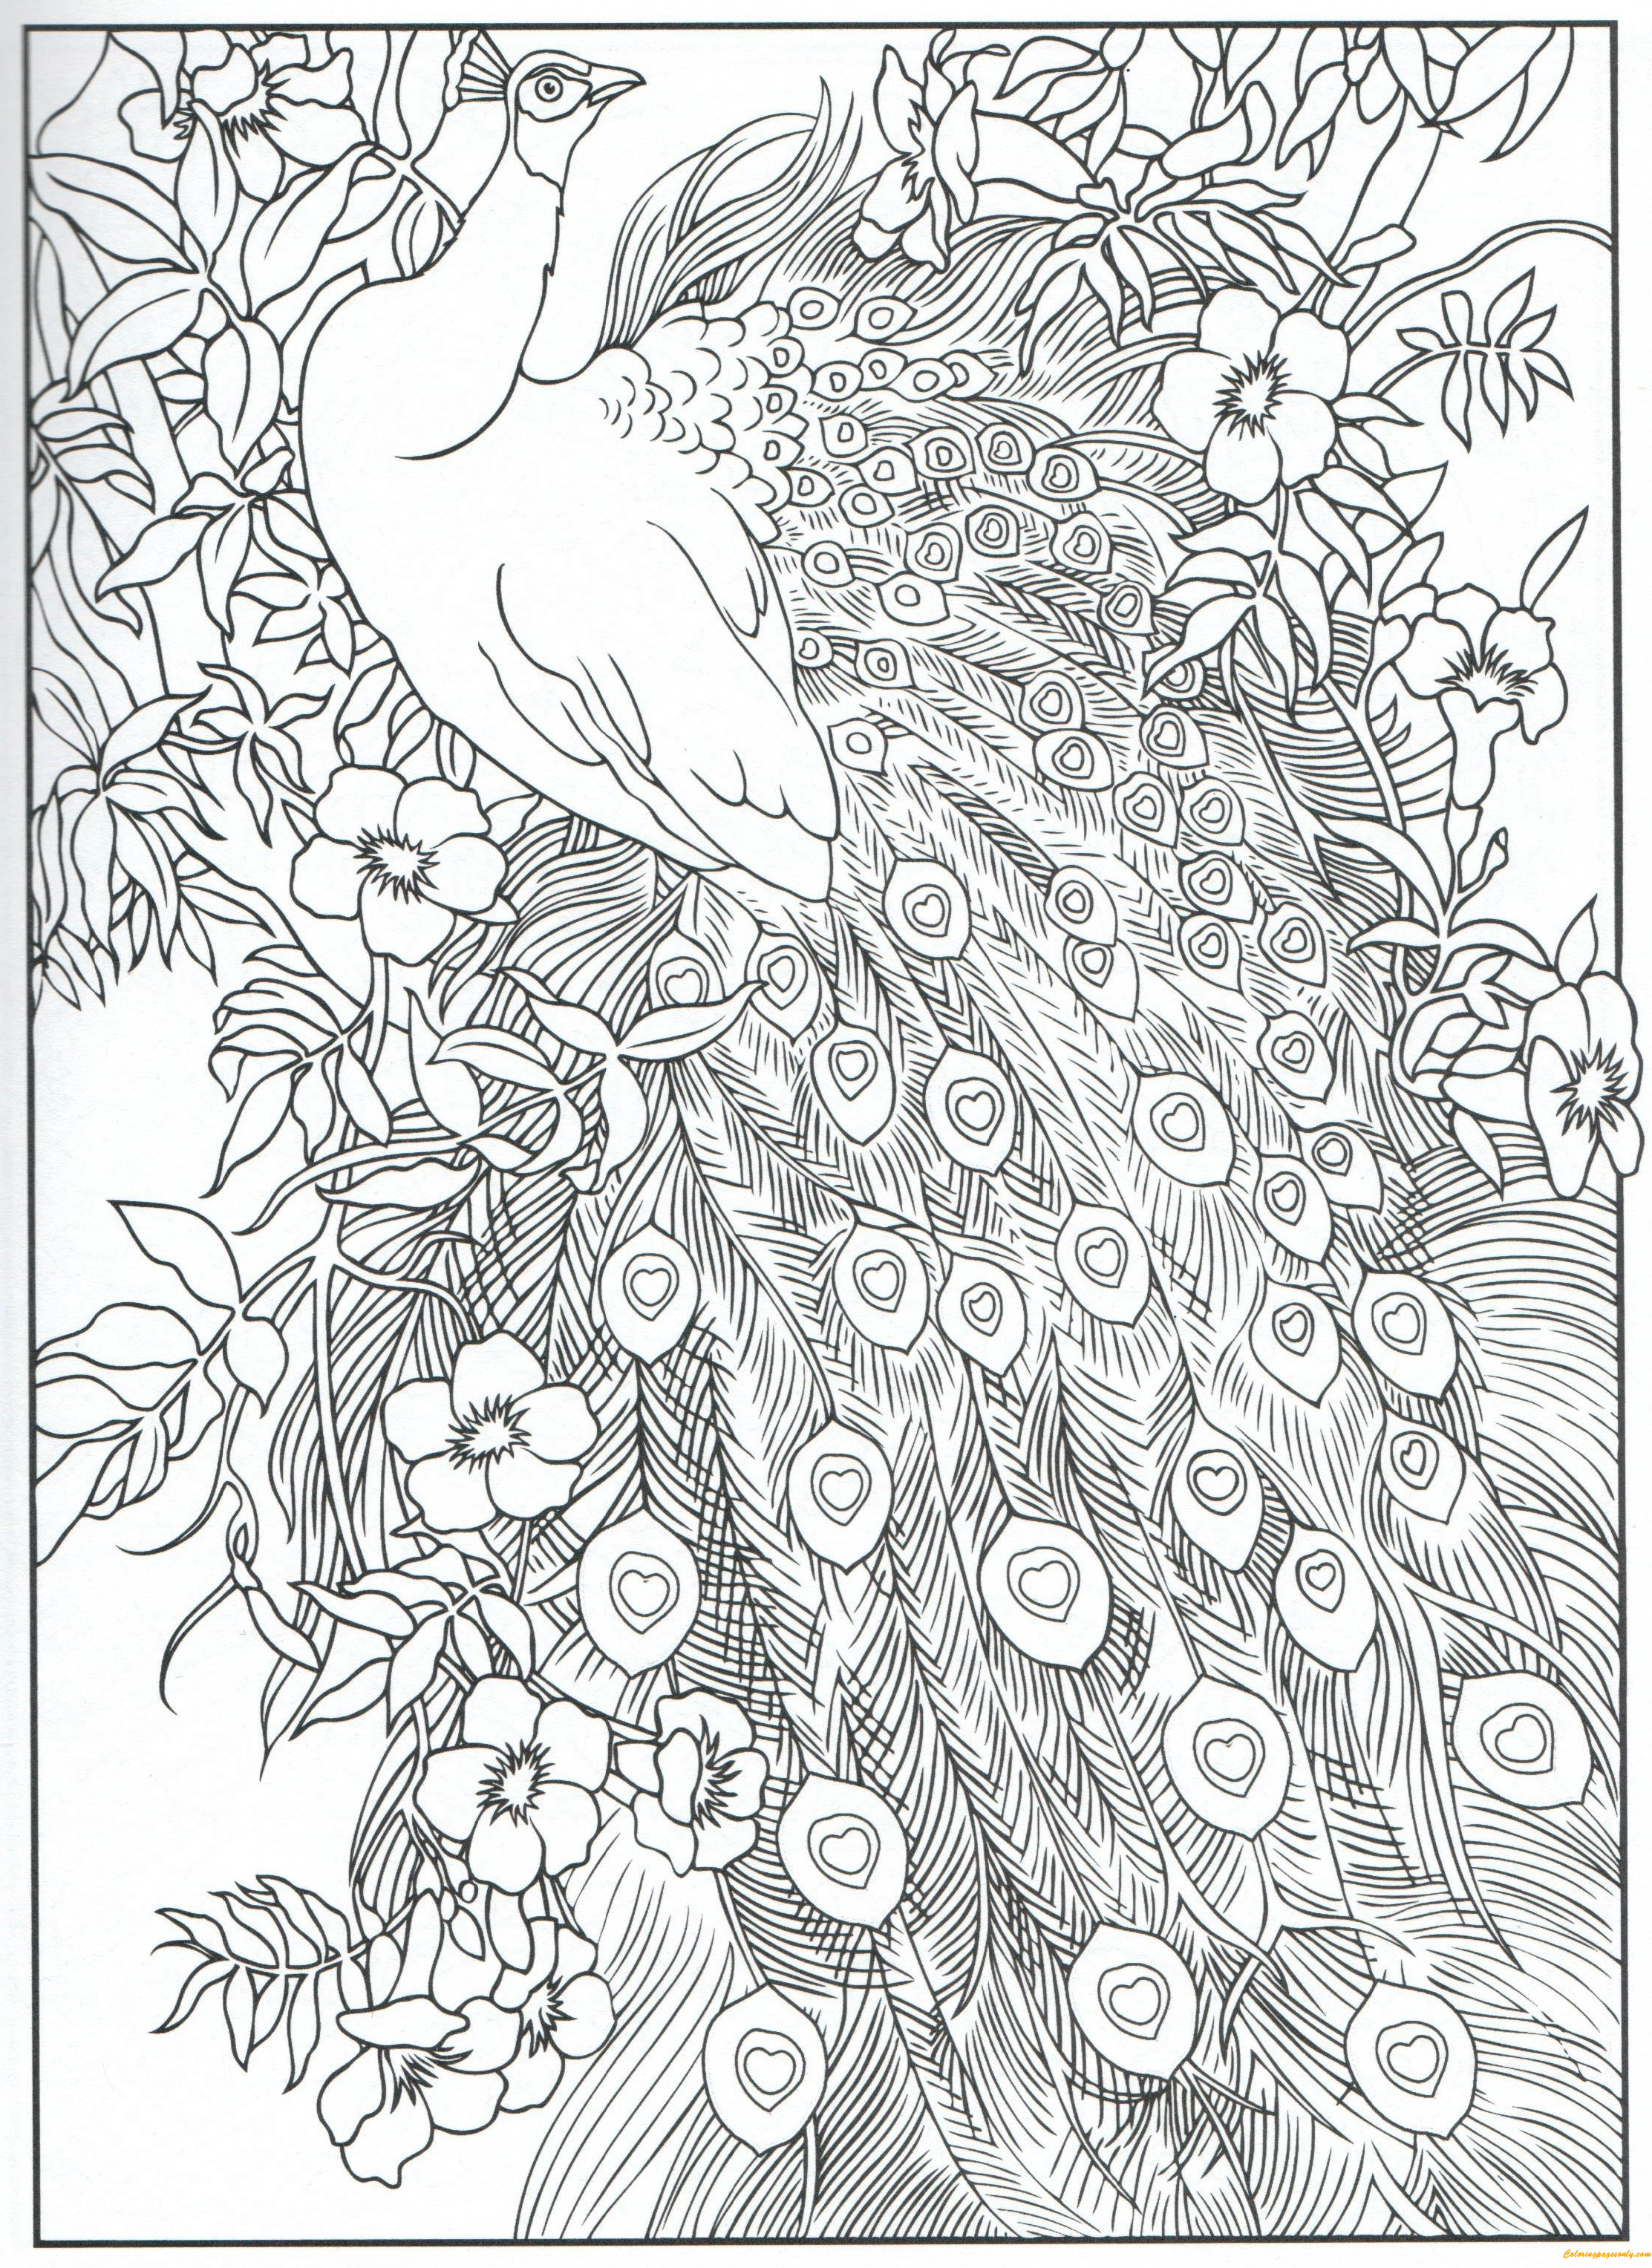 full screen download print picture - Peacock Coloring Pages